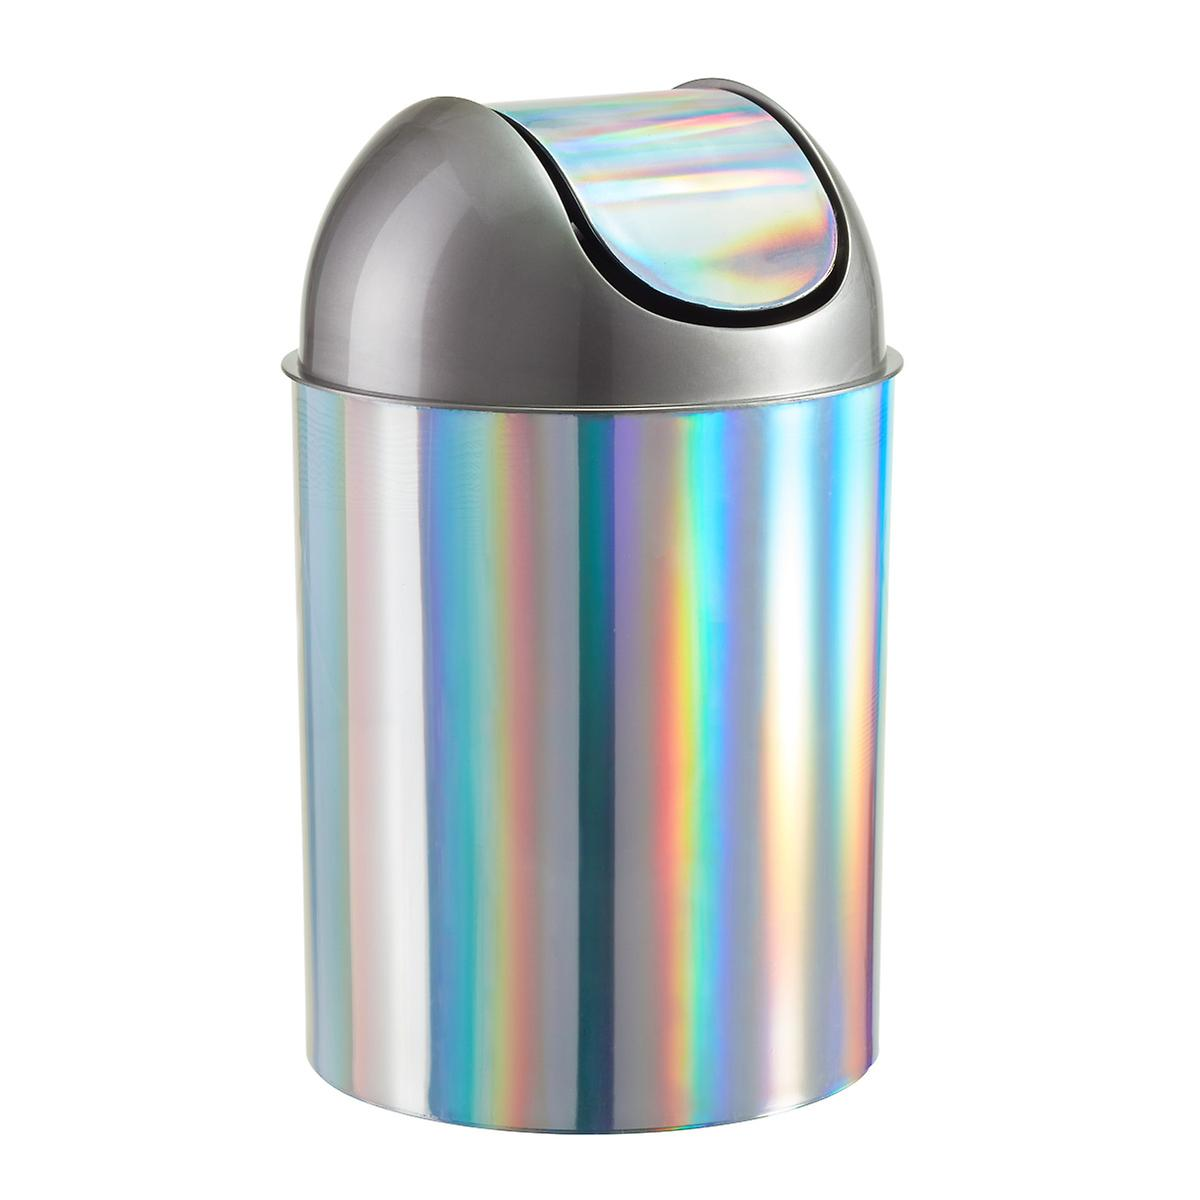 Image Result For Tall Trash Cans